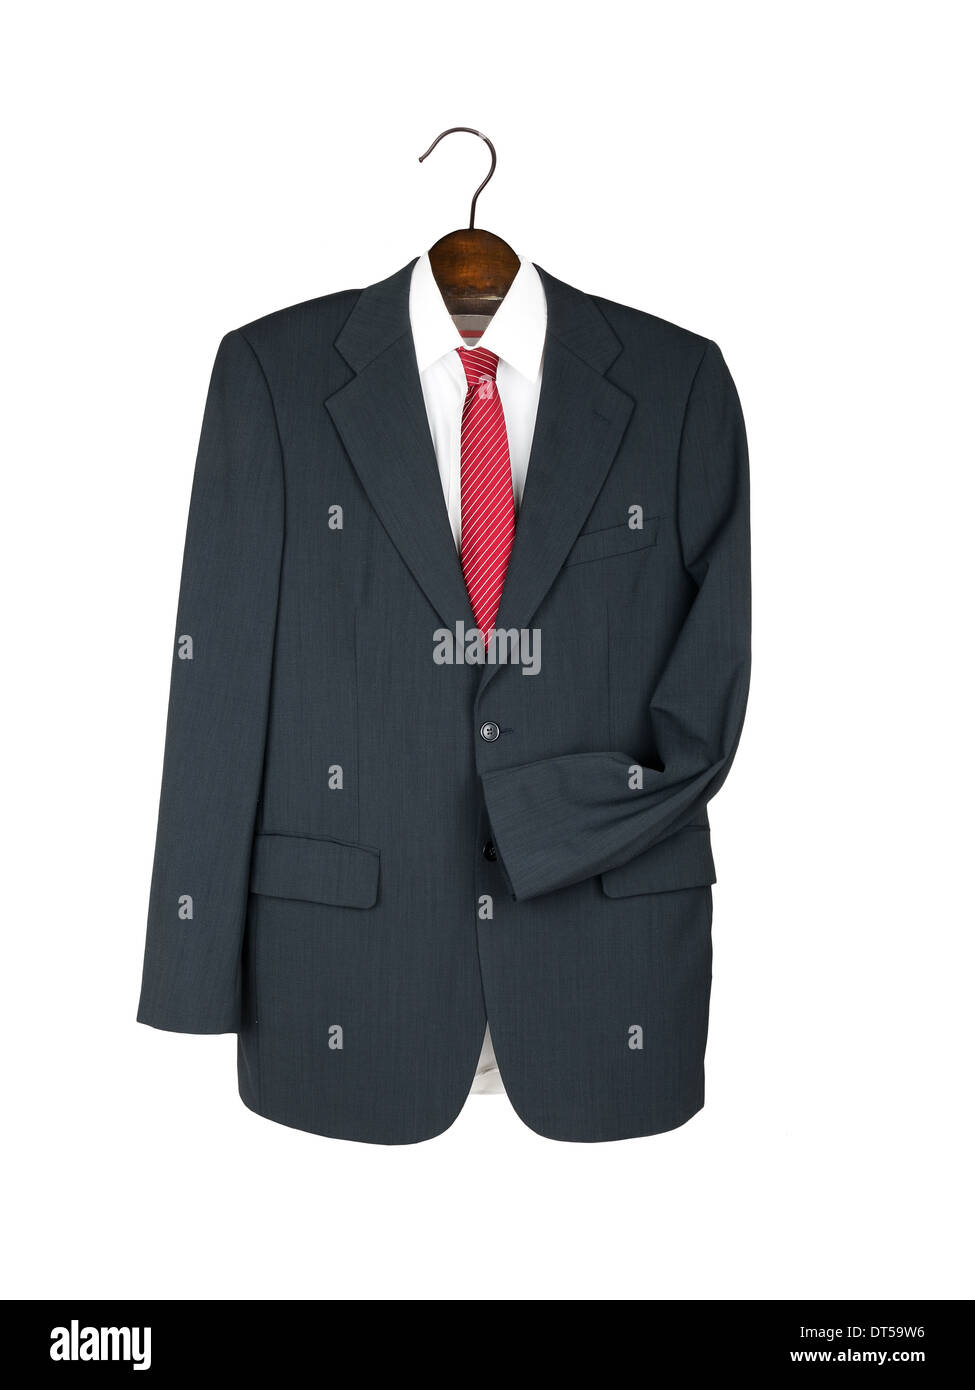 Man's suit on hanger with shirt, tie - isolated - Stock Image